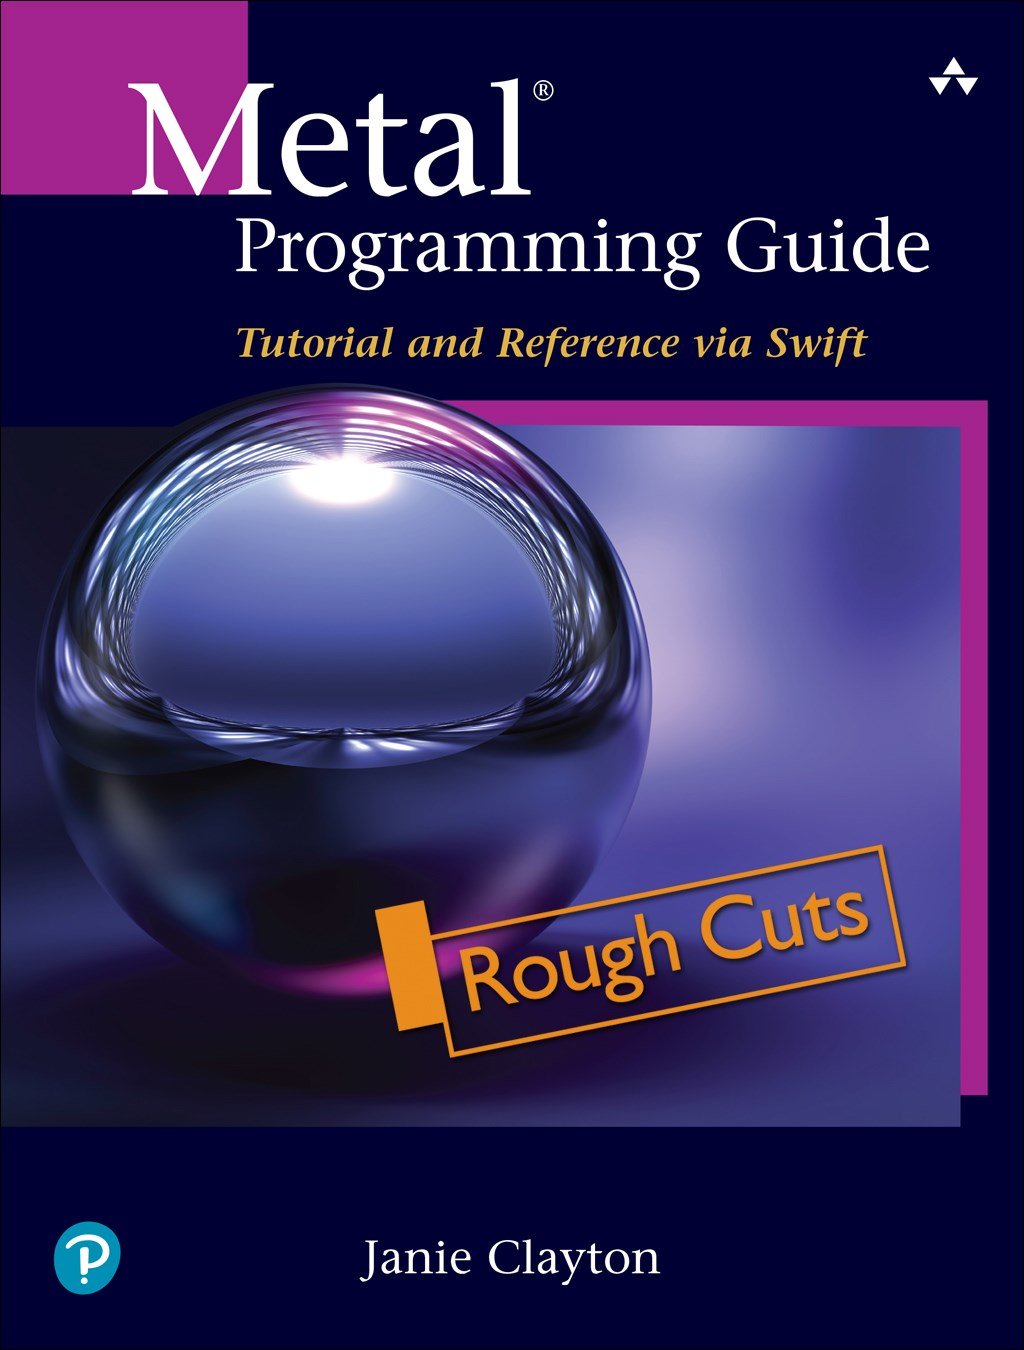 Metal Programming Guide: Tutorial and Reference via Swift, Rough Cuts